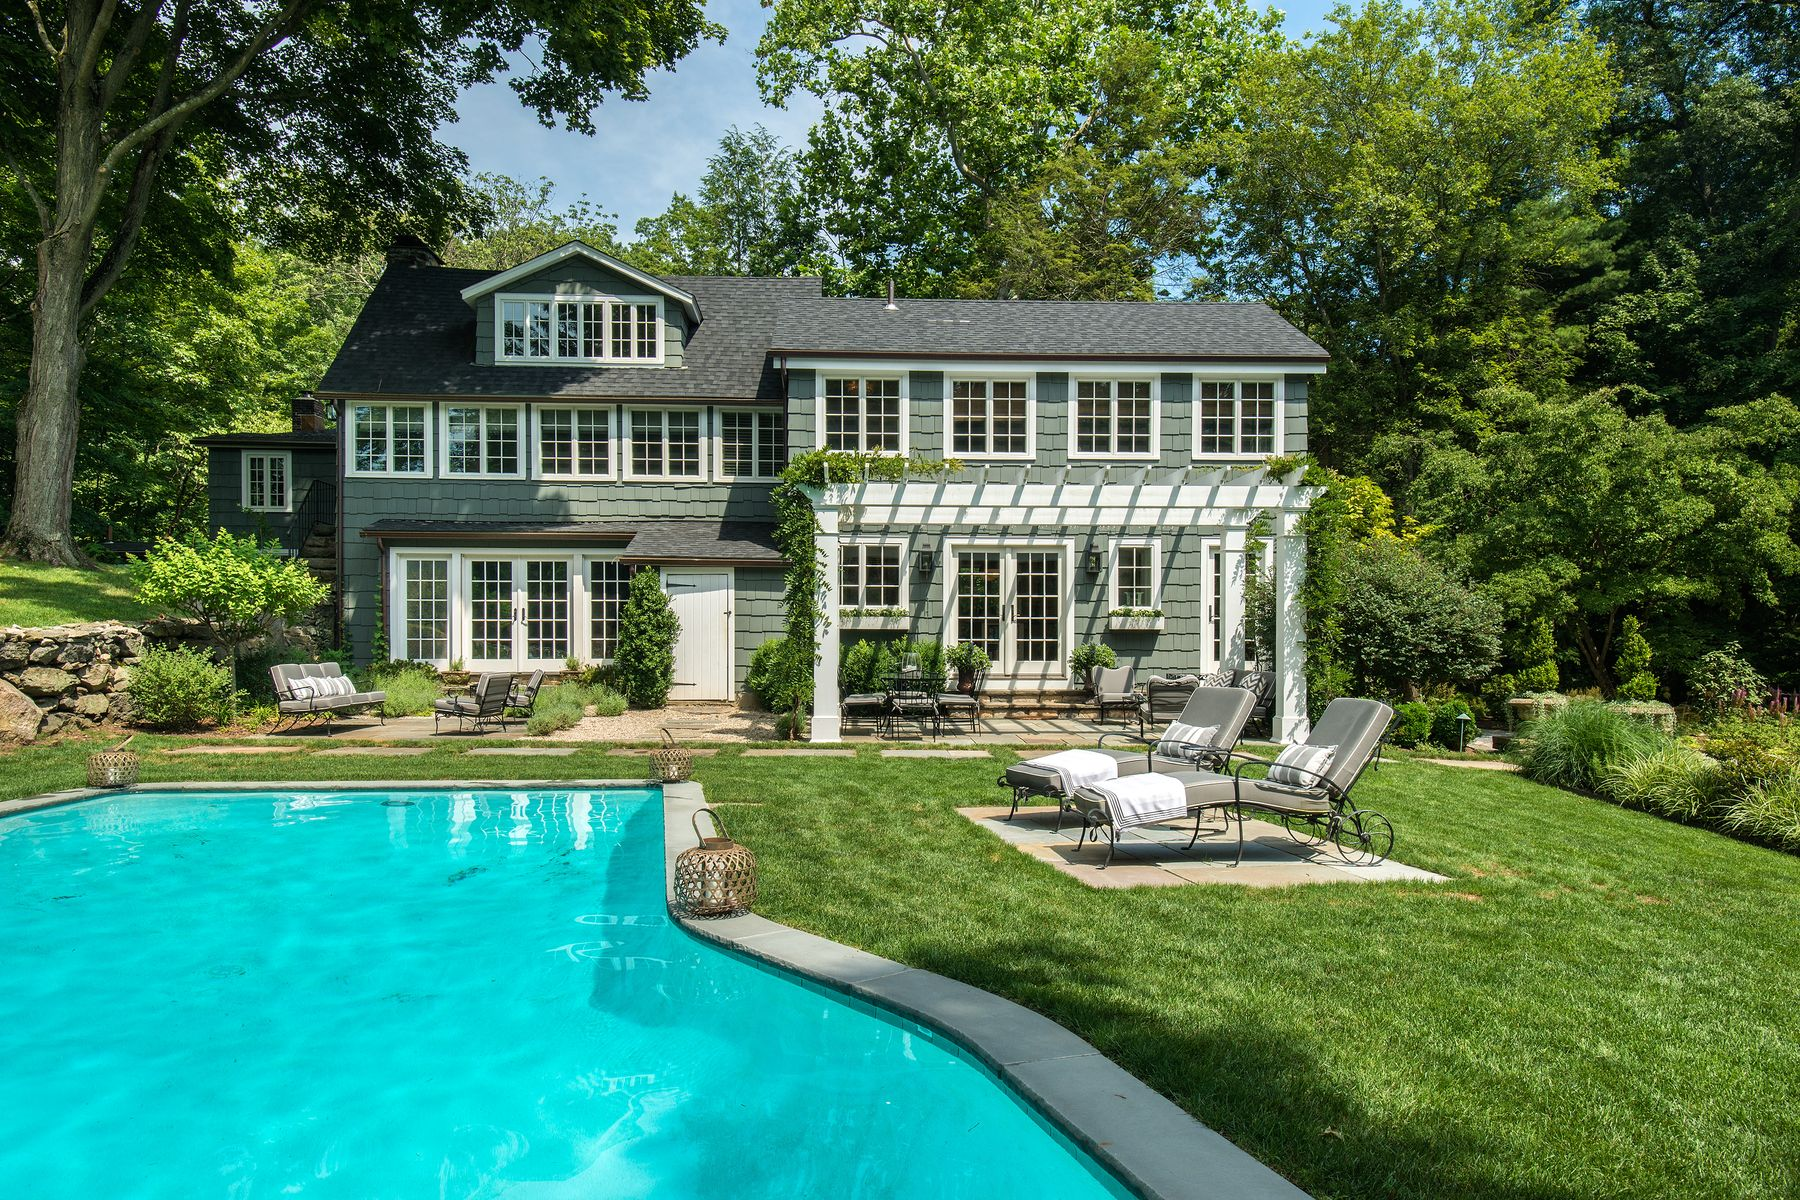 Single Family Homes для того Продажа на Stunning Historic Renovation! 66 Cat Rock Road, Cos Cob, Коннектикут 06807 Соединенные Штаты